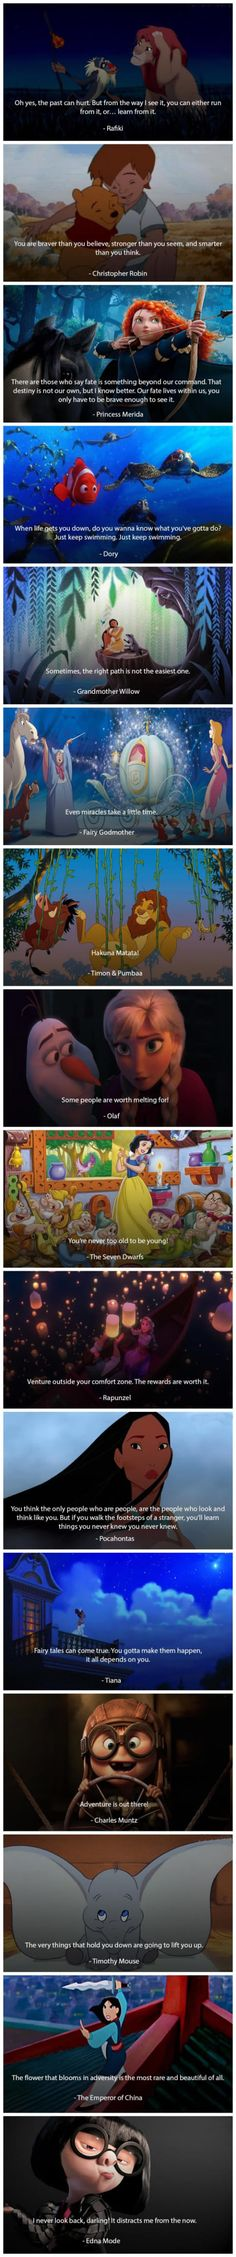 Inspirational Quotes From Animated Movies For The Times When You Are Feeling Like There Is No Hope Left In The World